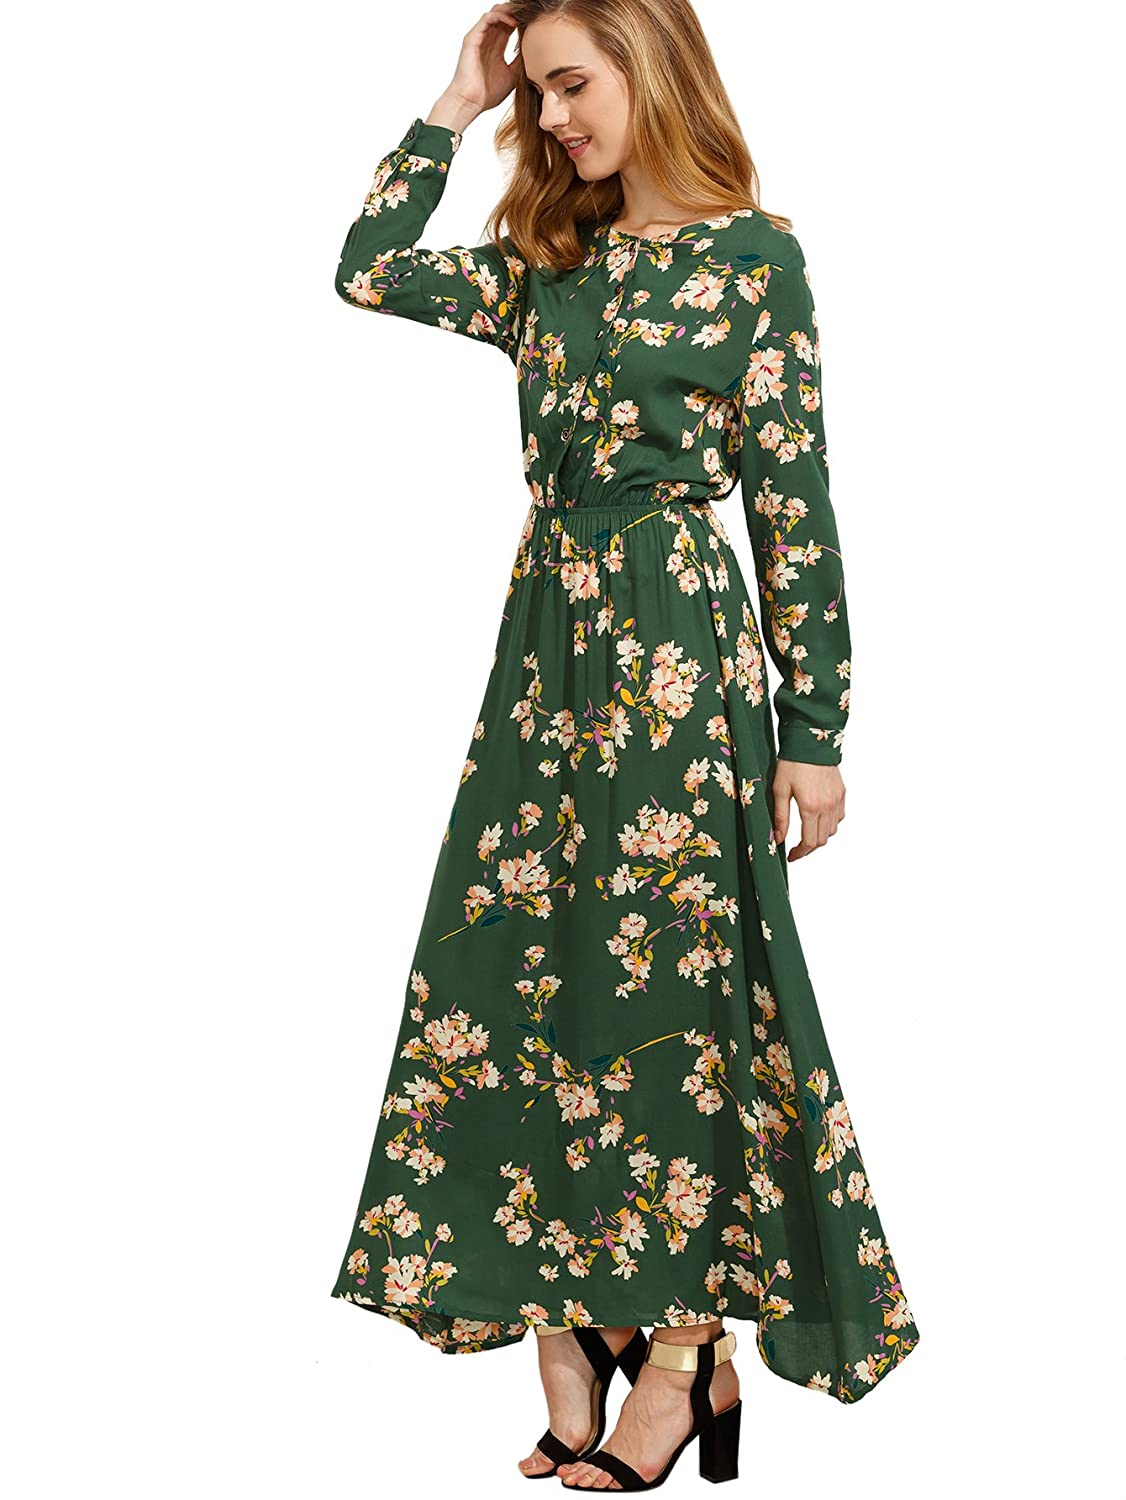 What Shoes To Wear With Floral Green Midi Dress